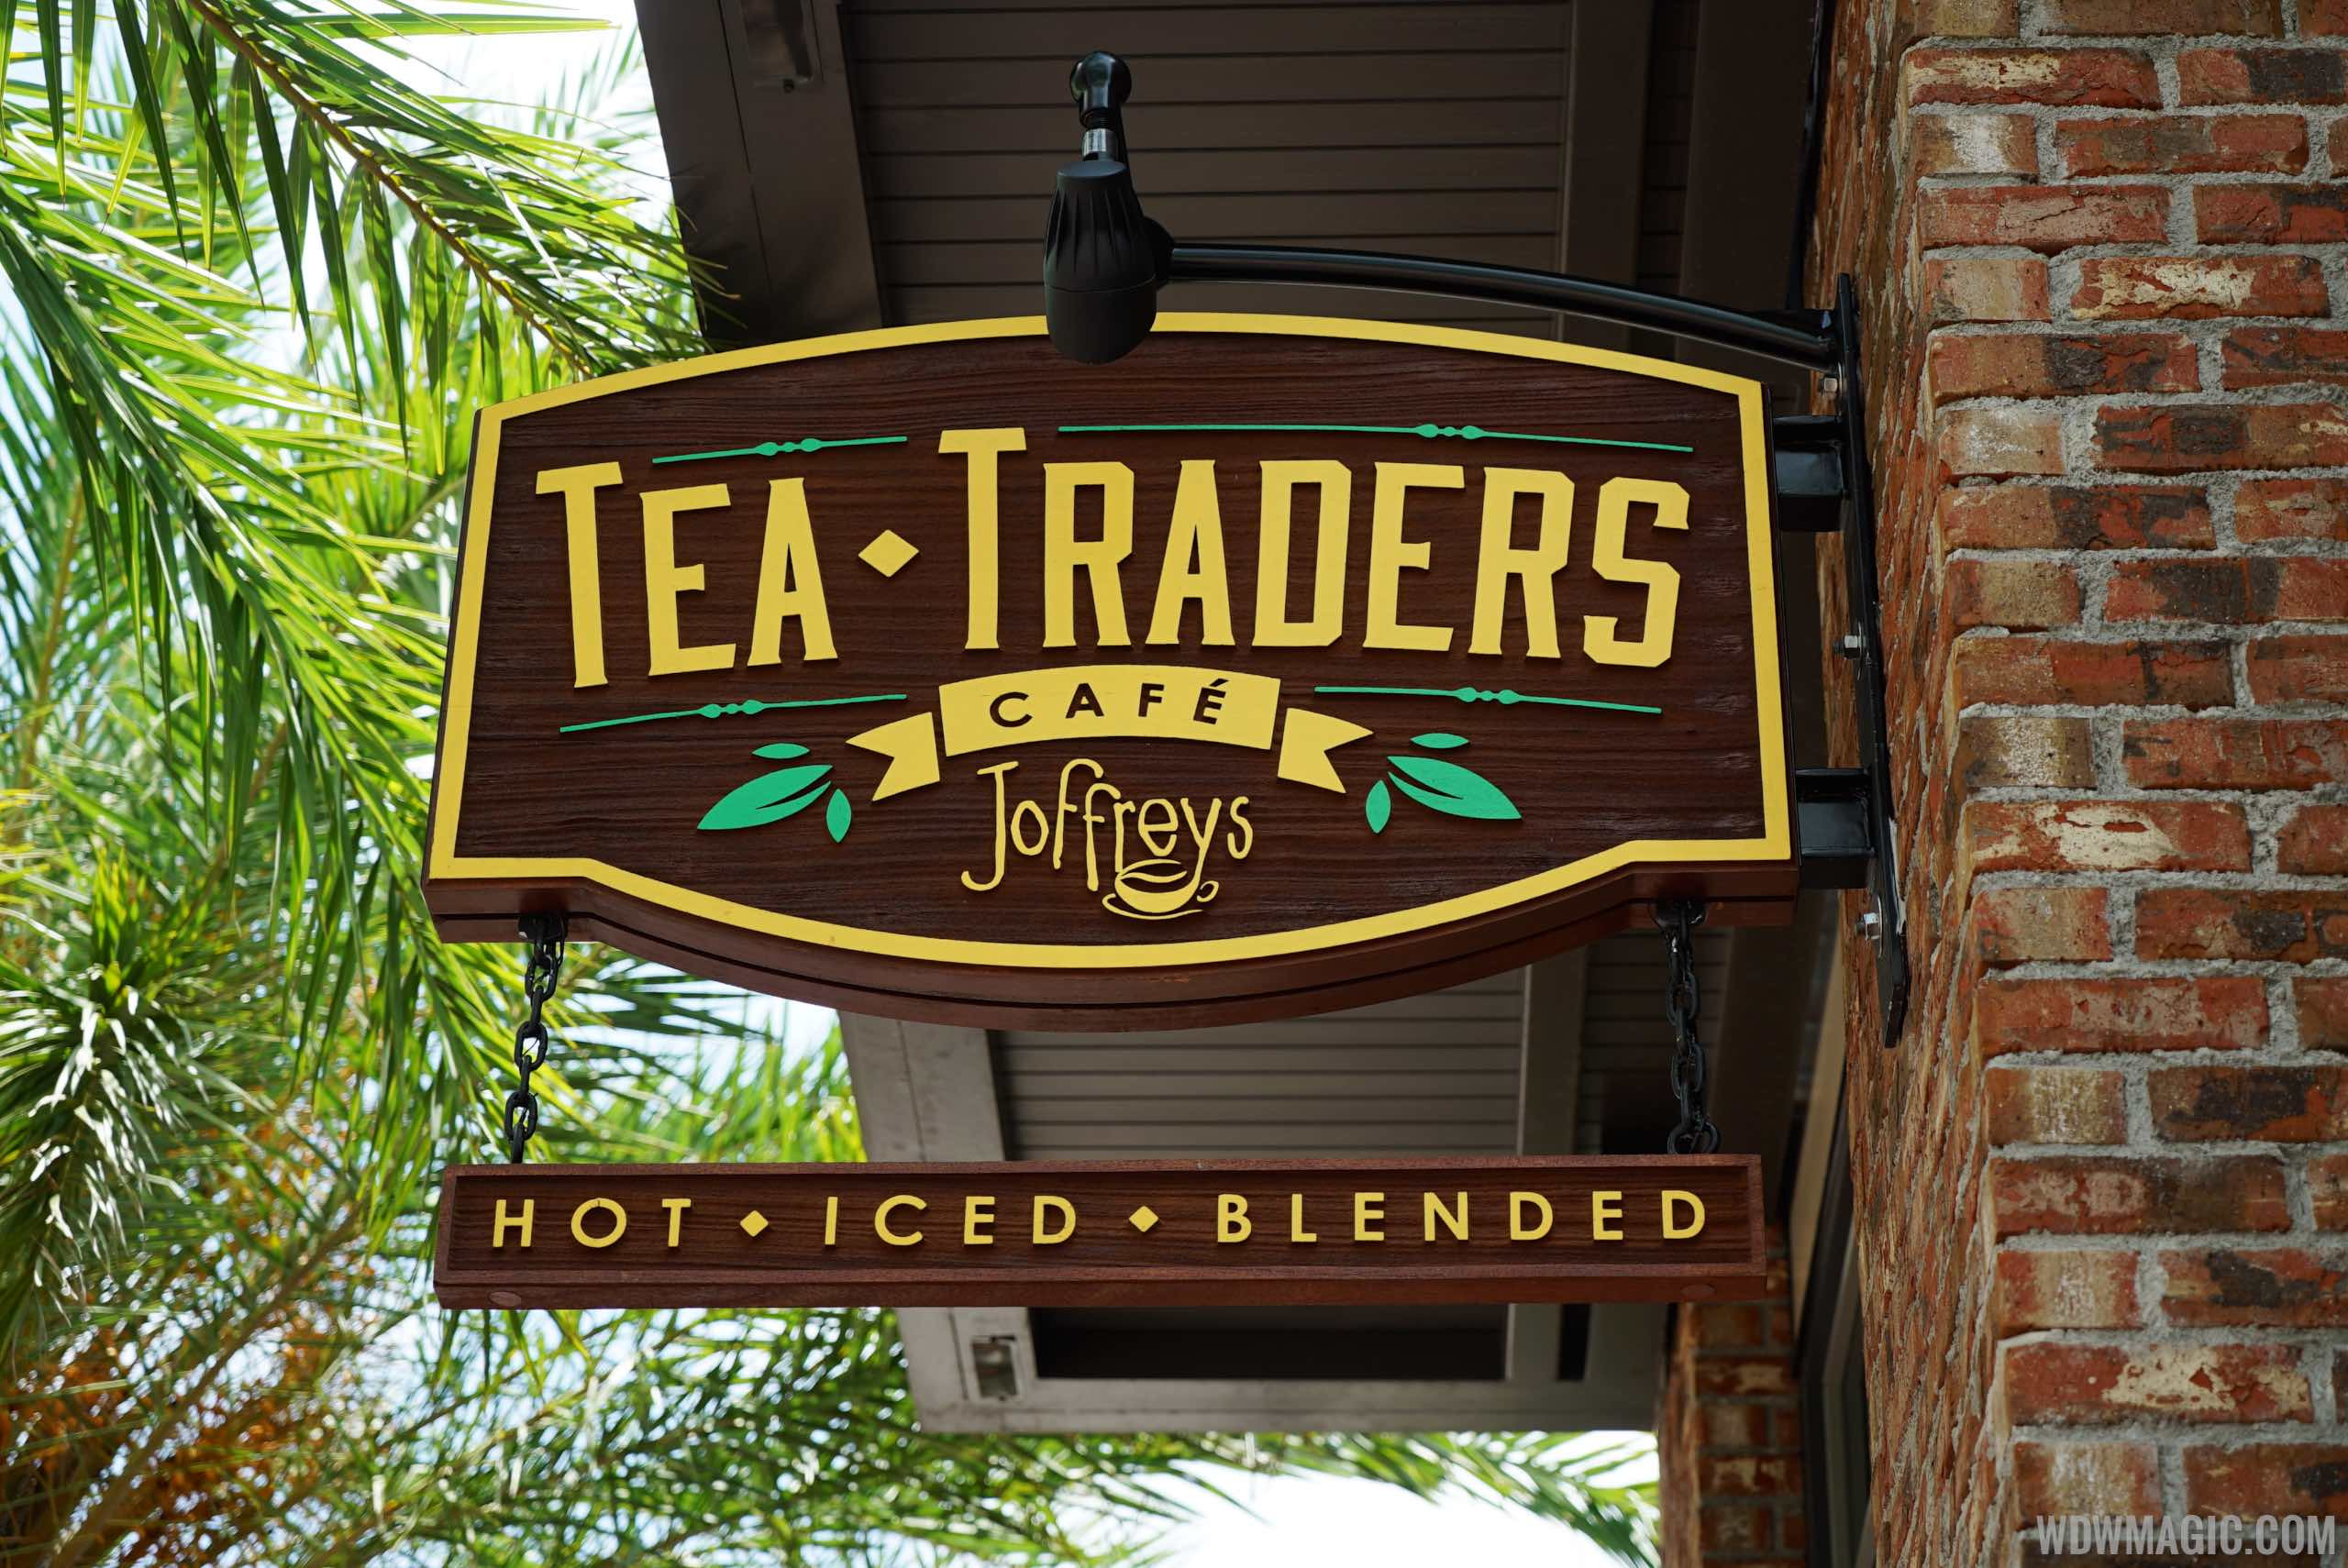 The Tea Traders Cafe overview